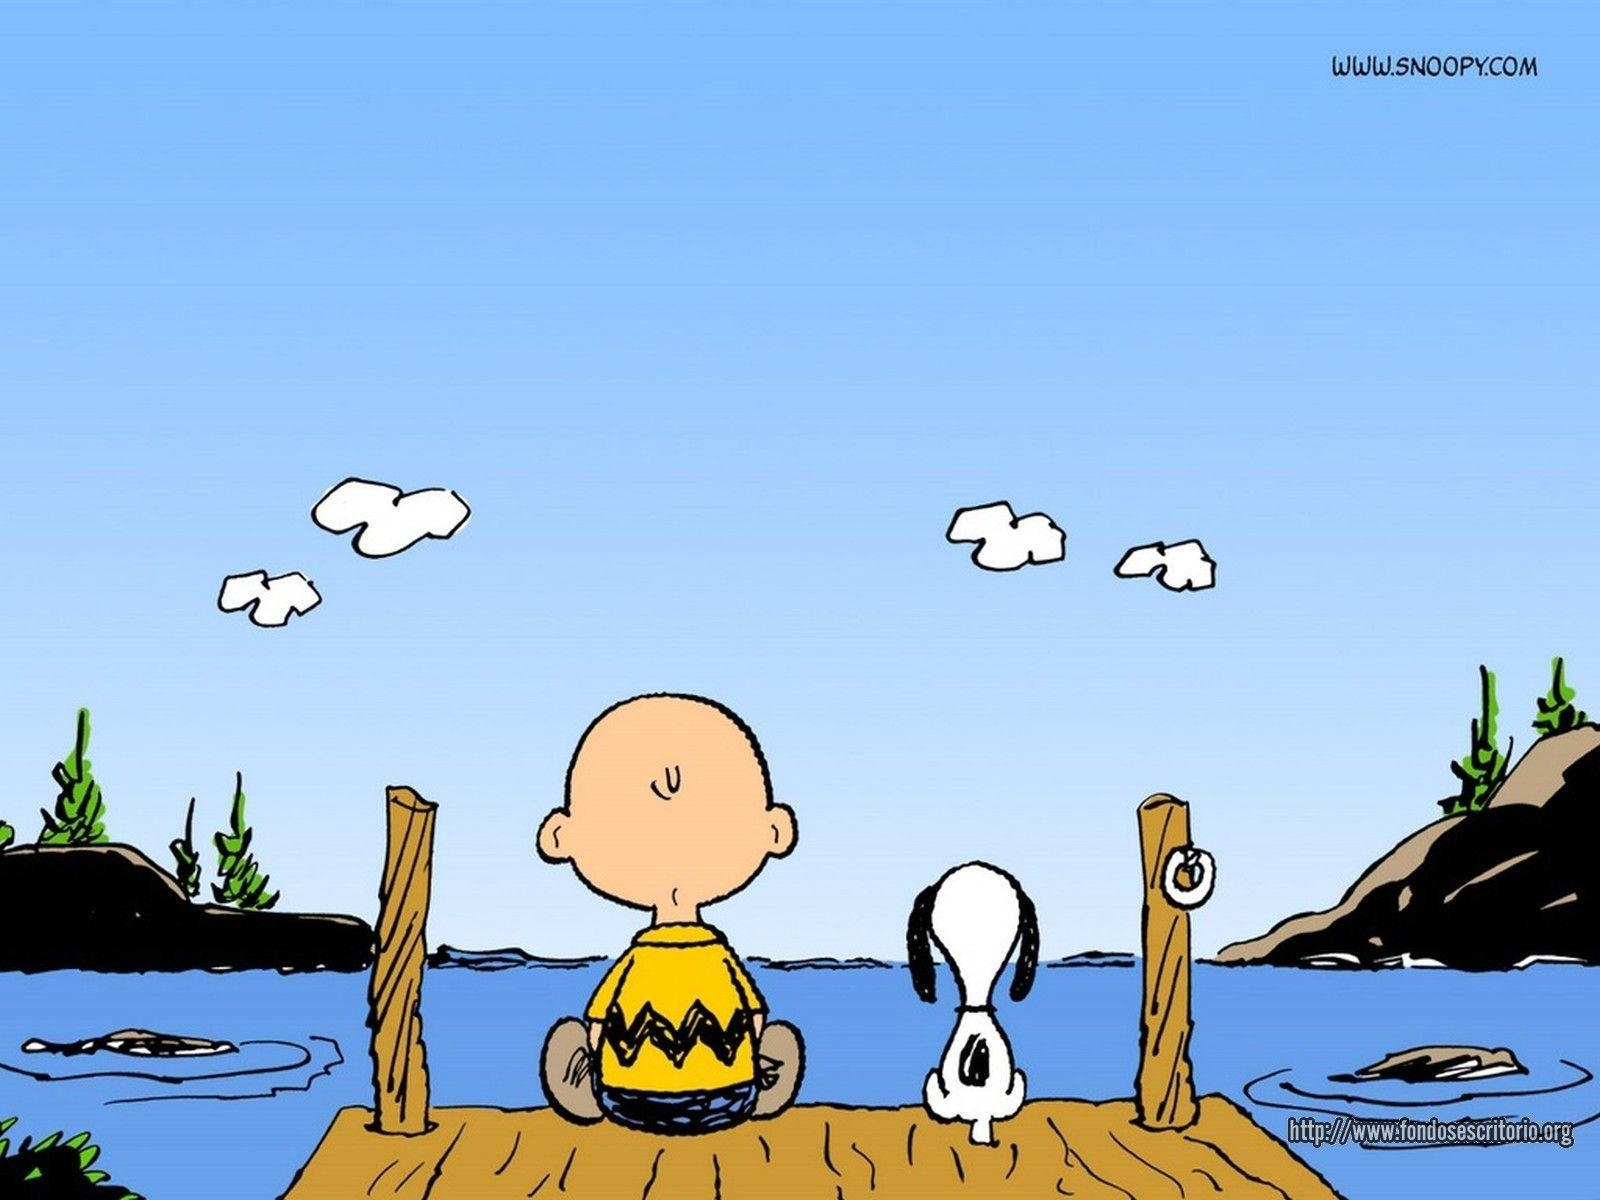 10 Best Snoopy Wallpaper For Desktop FULL HD 1080p For PC Desktop